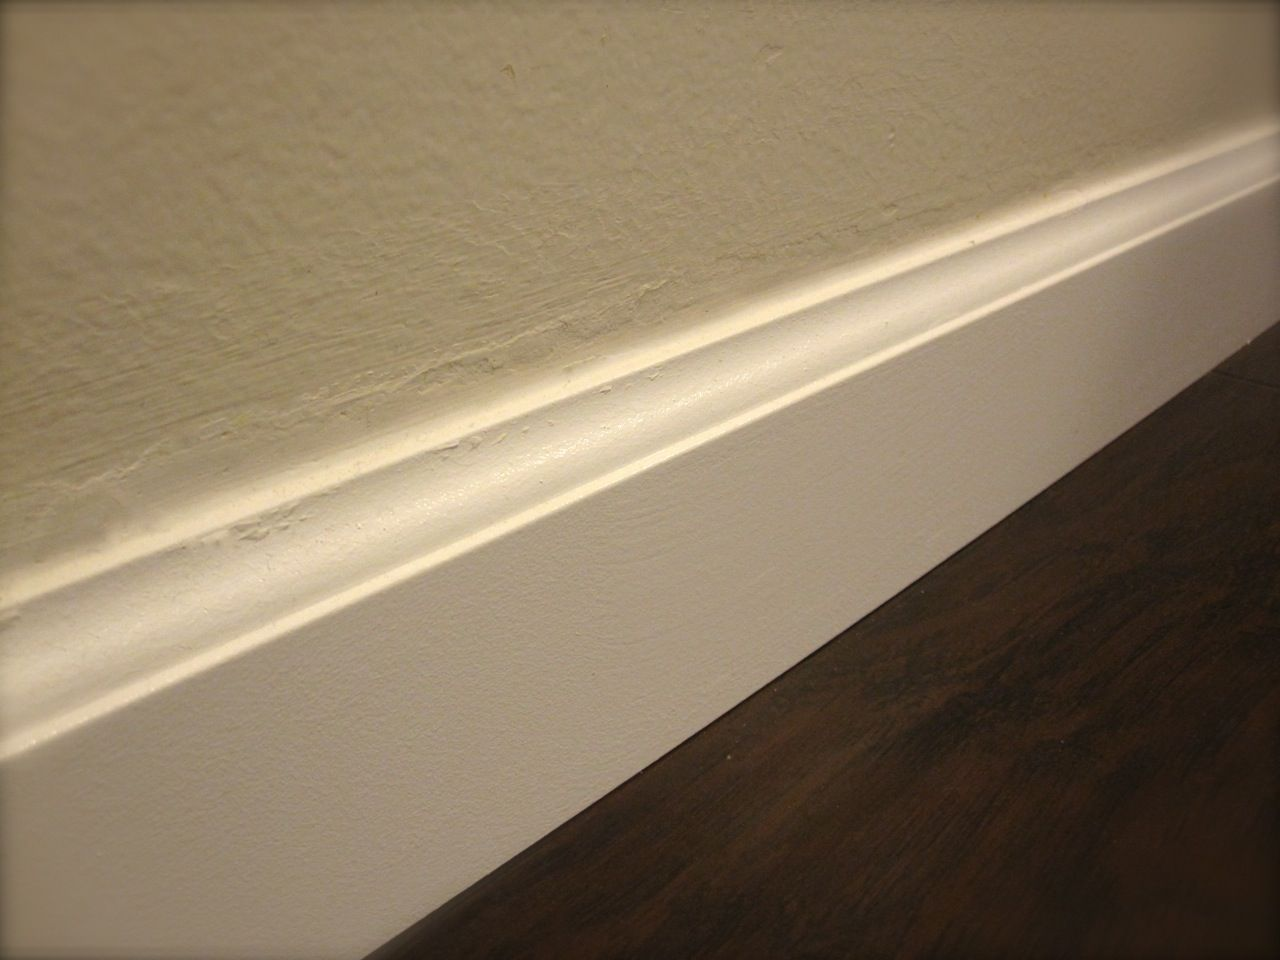 How to Clean Baseboards | Cleaning | Pinterest | Cleaning ...